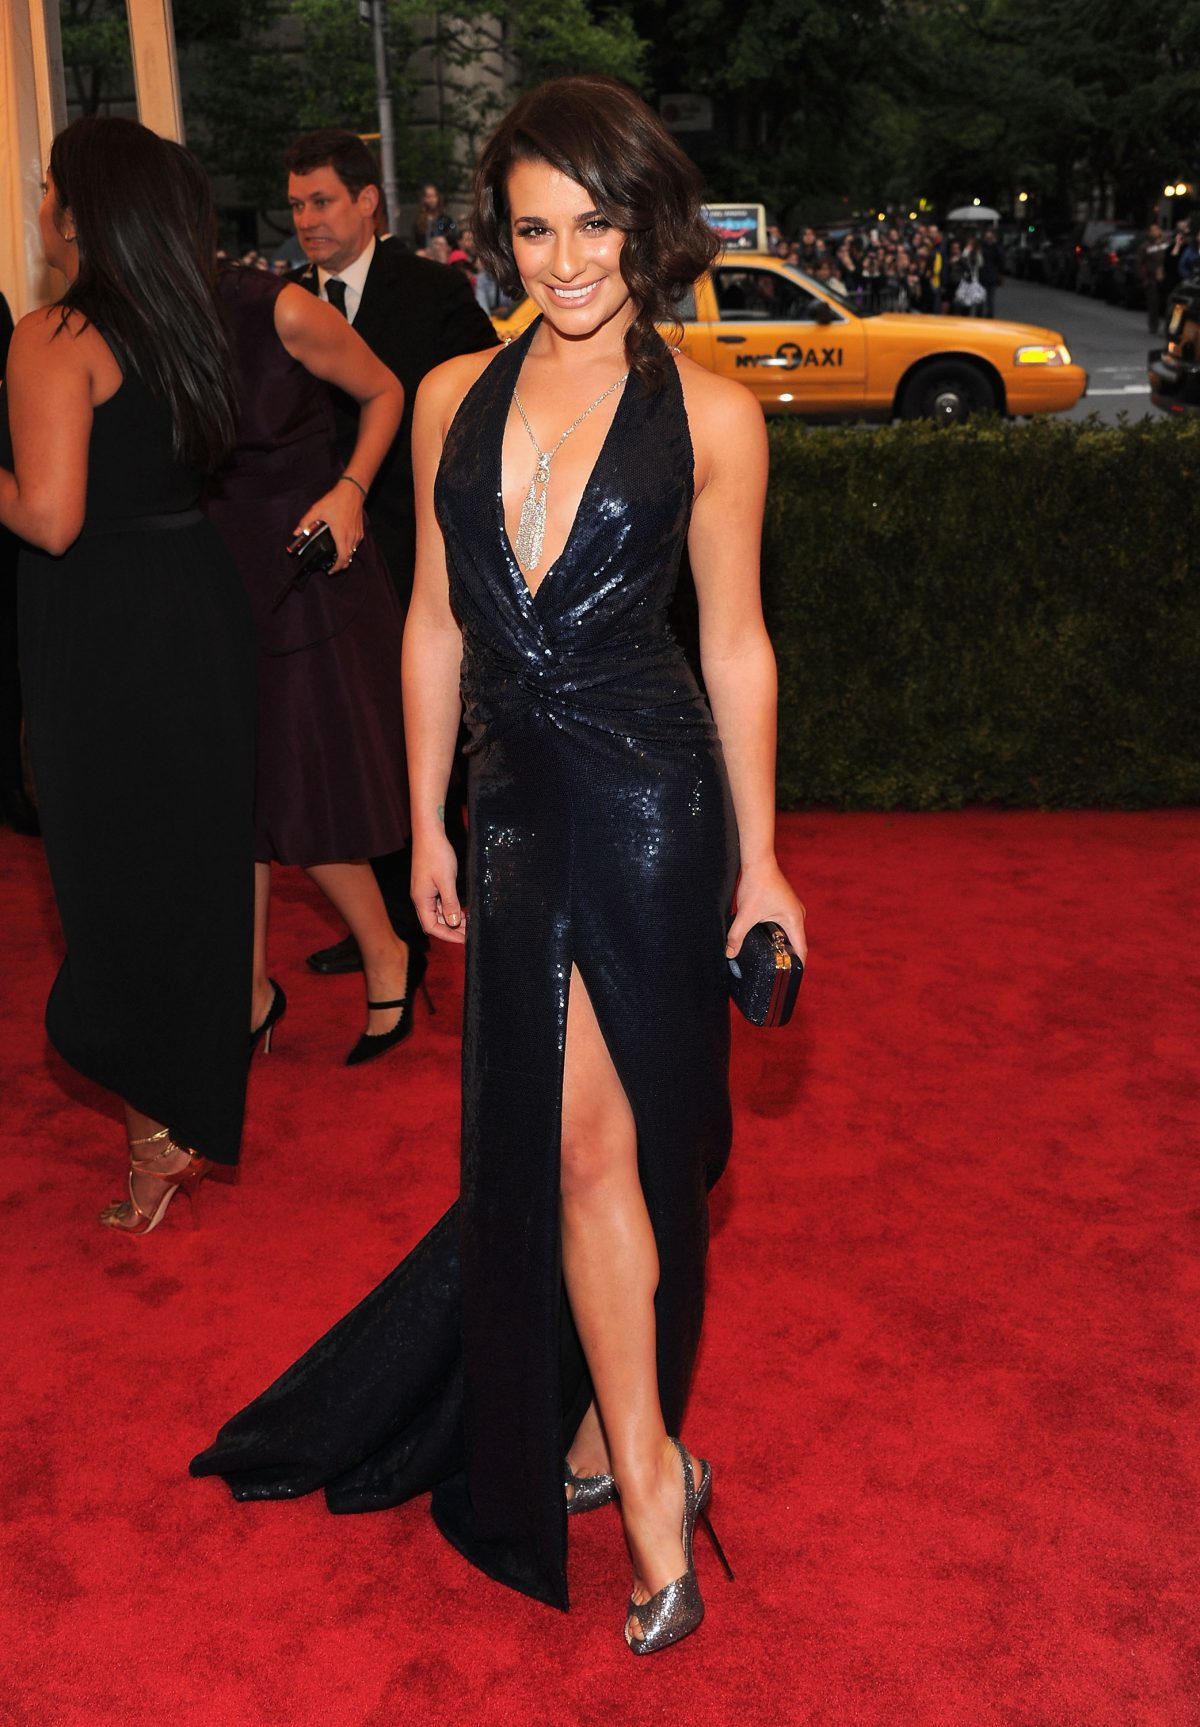 """Lea Michele attends the """"Schiaparelli And Prada: Impossible Conversations"""" Costume Institute Gala at the Metropolitan Museum of Art on May 7, 2012 in New York City. (Photo by Larry Busacca/Getty Images)"""